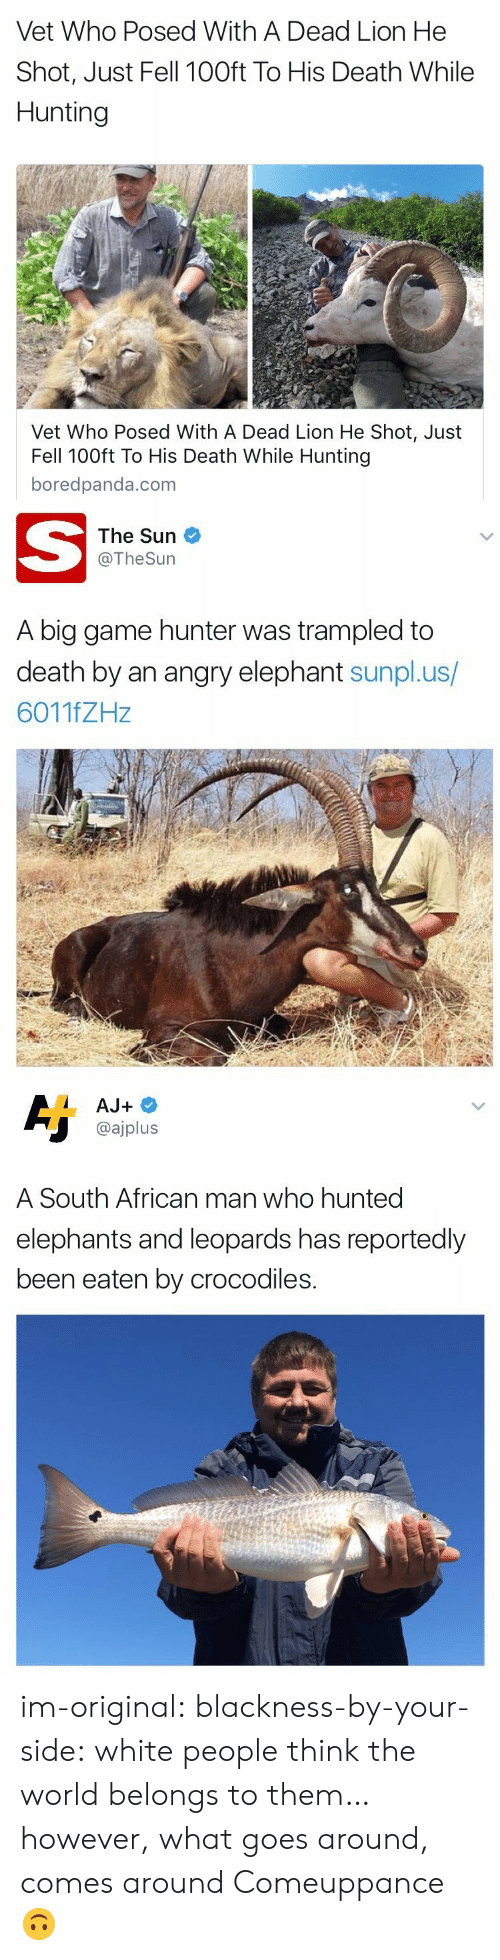 Target, Tumblr, and White People: Vet Who Posed With A Dead Lion He  Shot, Just Fell 100ft To His Death While  Hunting  Vet Who Posed With A Dead Lion He Shot, Just  Fell 100ft To His Death While Hunting  boredpanda.com   The Sun  @TheSurn  A big game hunter was trampled to  death by an angry elephant sunpl.us/  6011fZHz   @ajplus  A South African man who hunted  elephants and leoparas has reportedly  been eaten by crocodiles. im-original: blackness-by-your-side:  white people think the world belongs to them… however, what goes around, comes around  Comeuppance 🙃